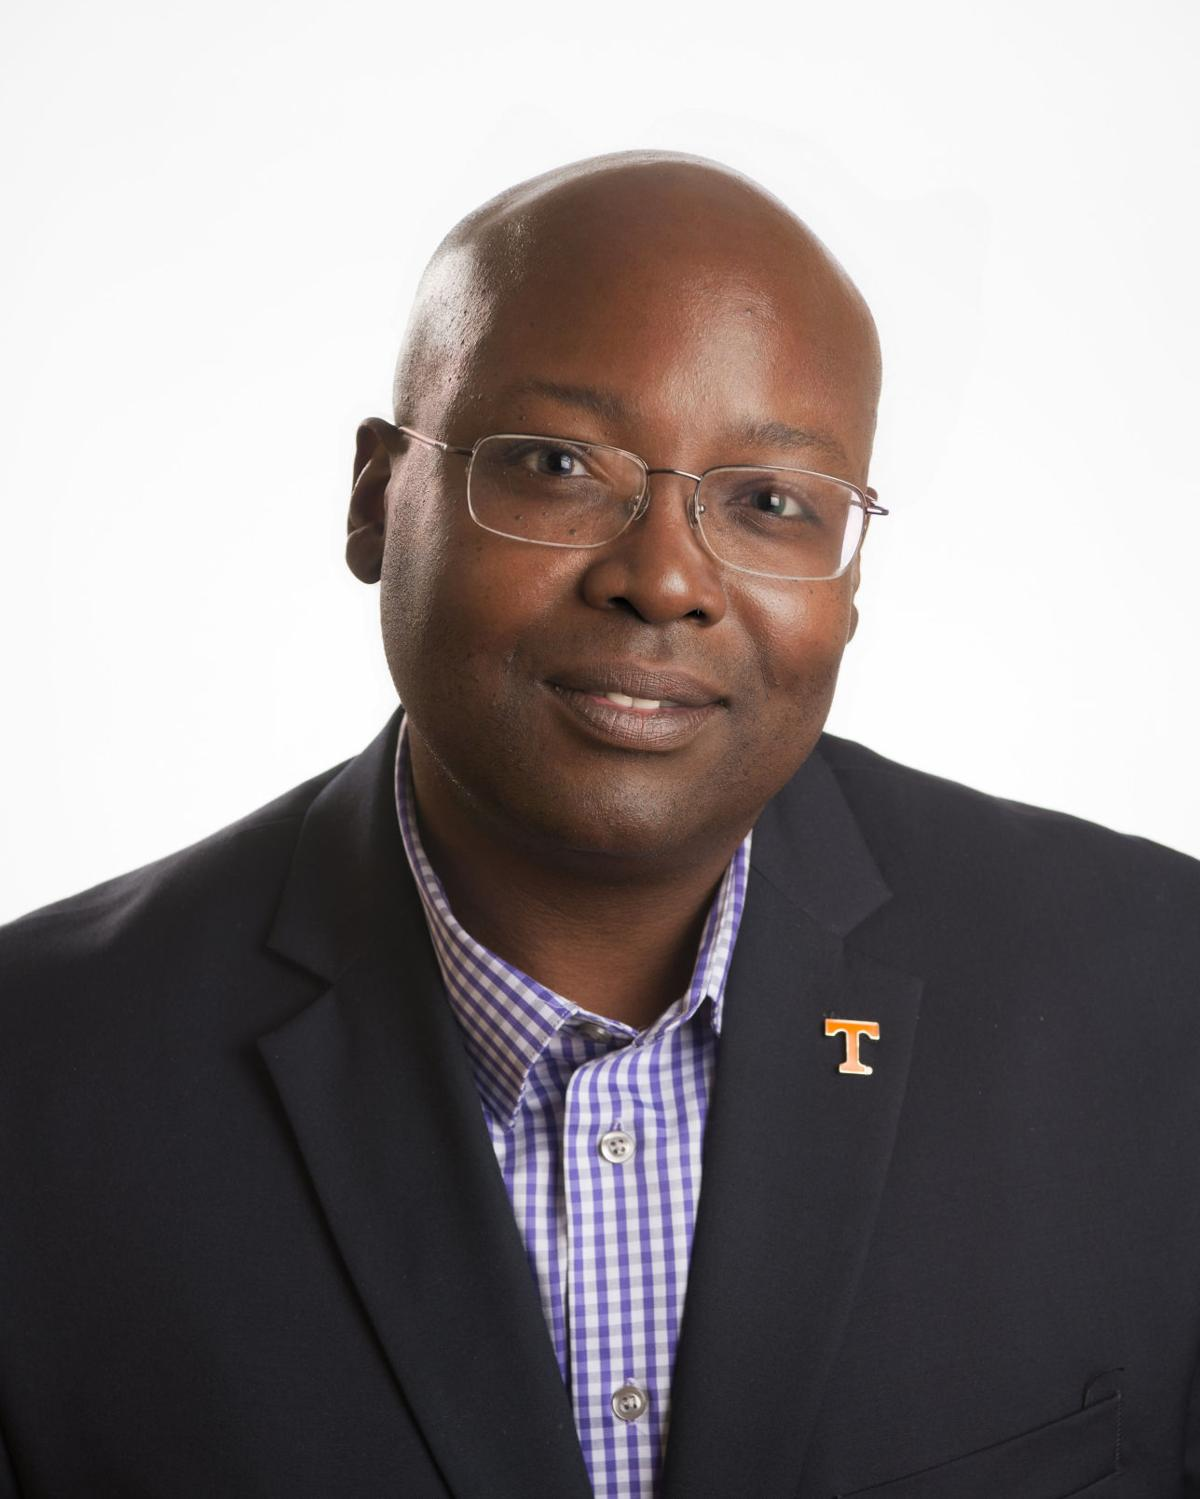 Dr. Andre Temple